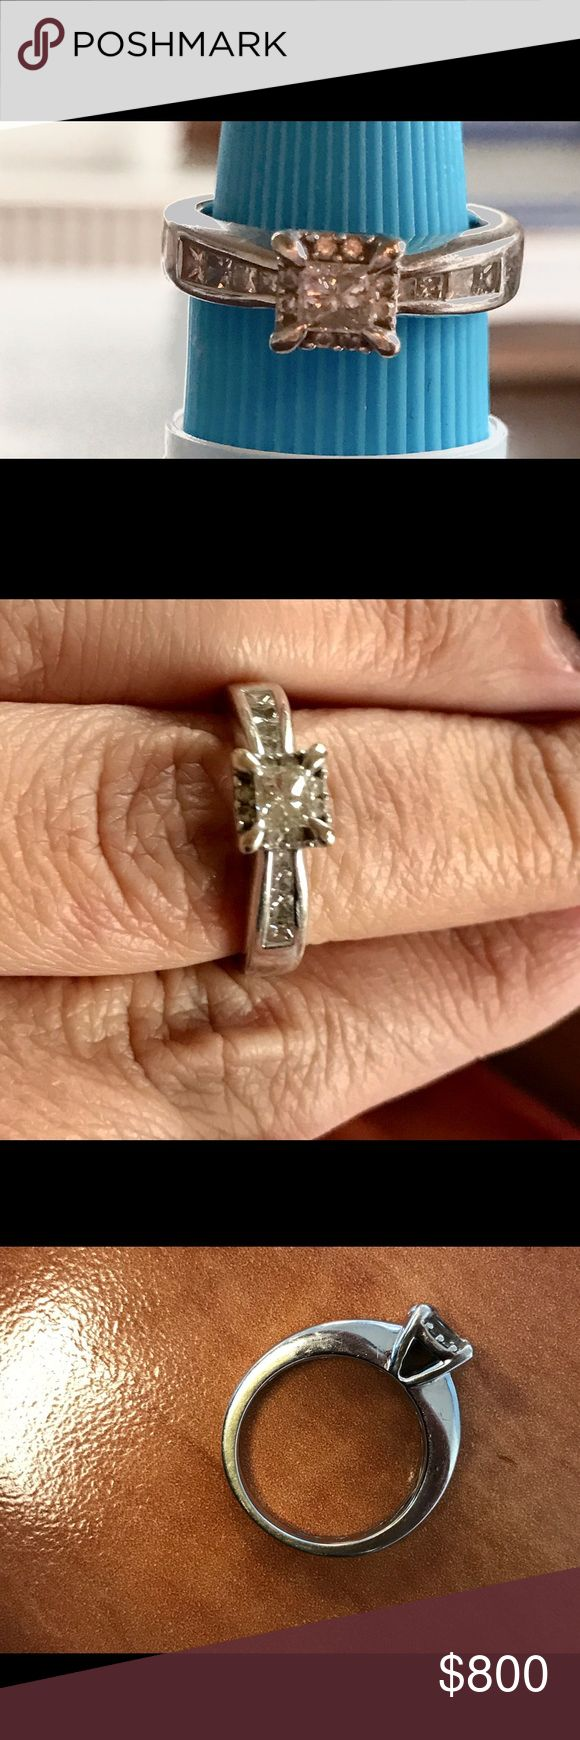 14k white gold engagement ring 14 k white gold 1 carat engagement ring with accent diamonds. Purchased in 2013 for $1800 at Jared. A very similar ring is $1900 now. Been cleaned in 2015 and we'll taken care of. Jewelry Rings